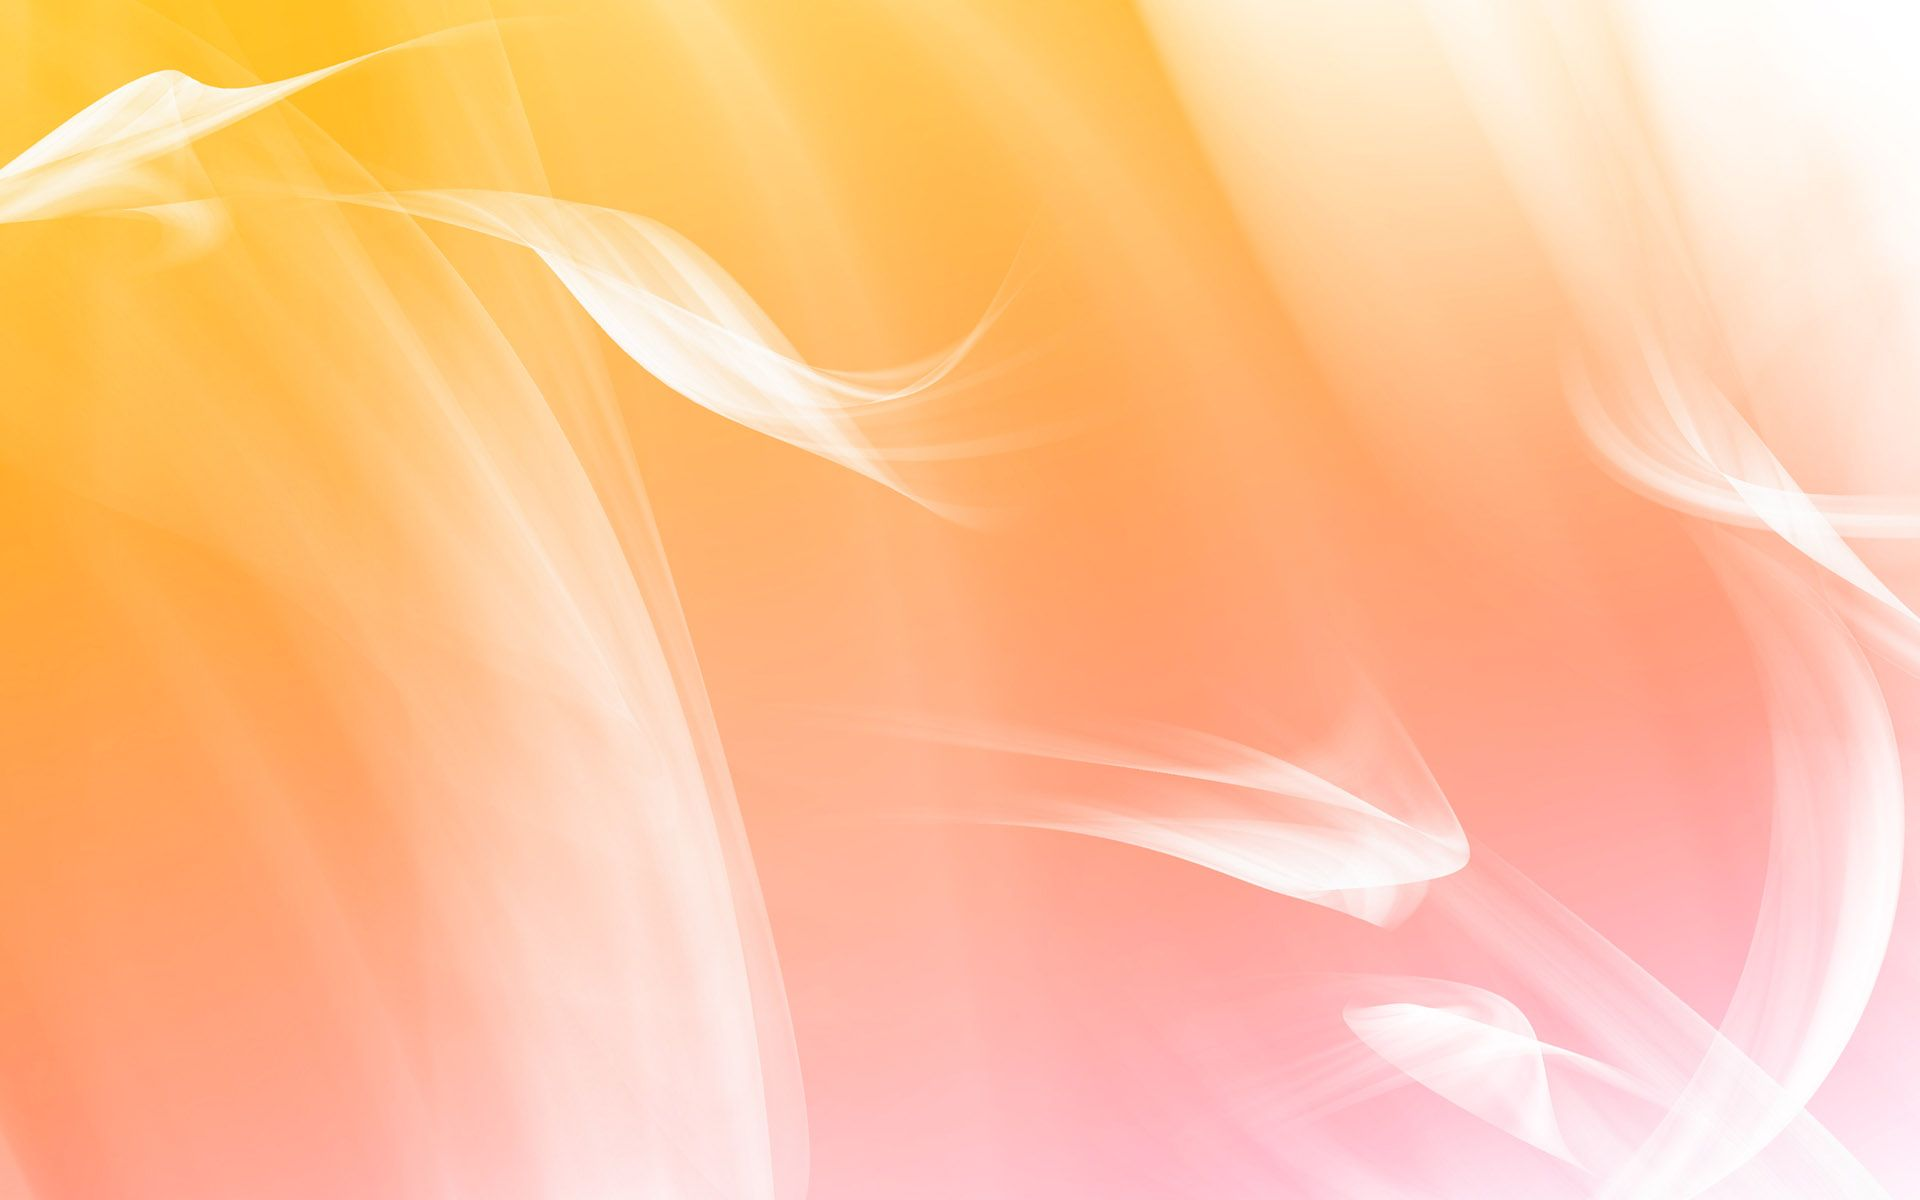 Pastel Orange Iphone Wallpaper Gadget And PC